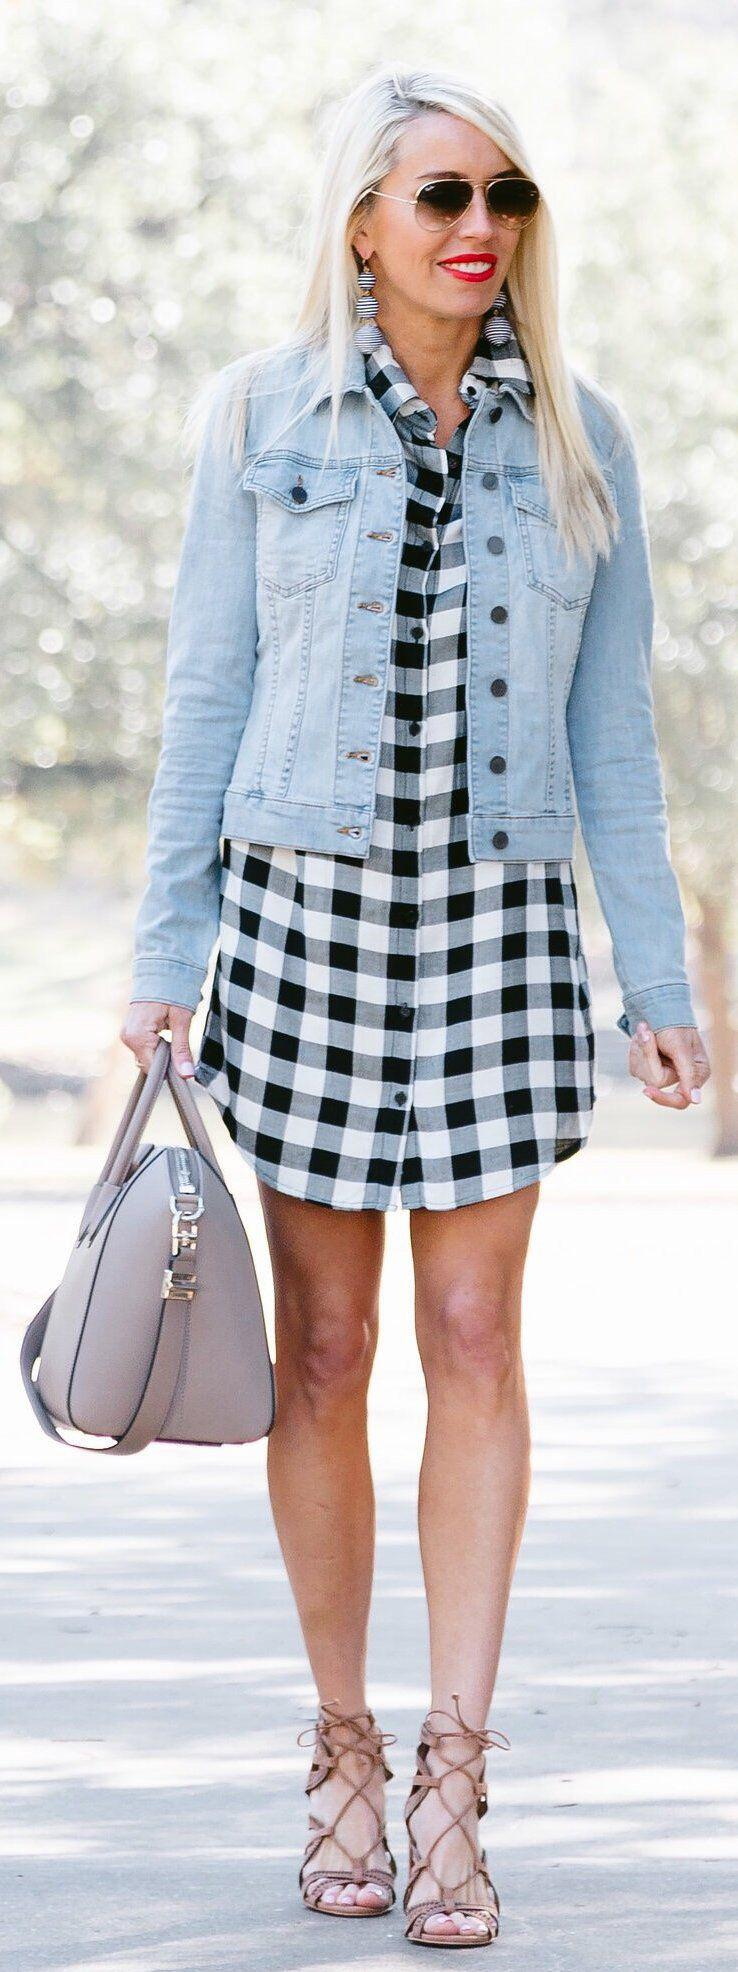 11 lovely spring outfits with a denim jacket 5 - 11 lovely spring outfits with a denim jacket